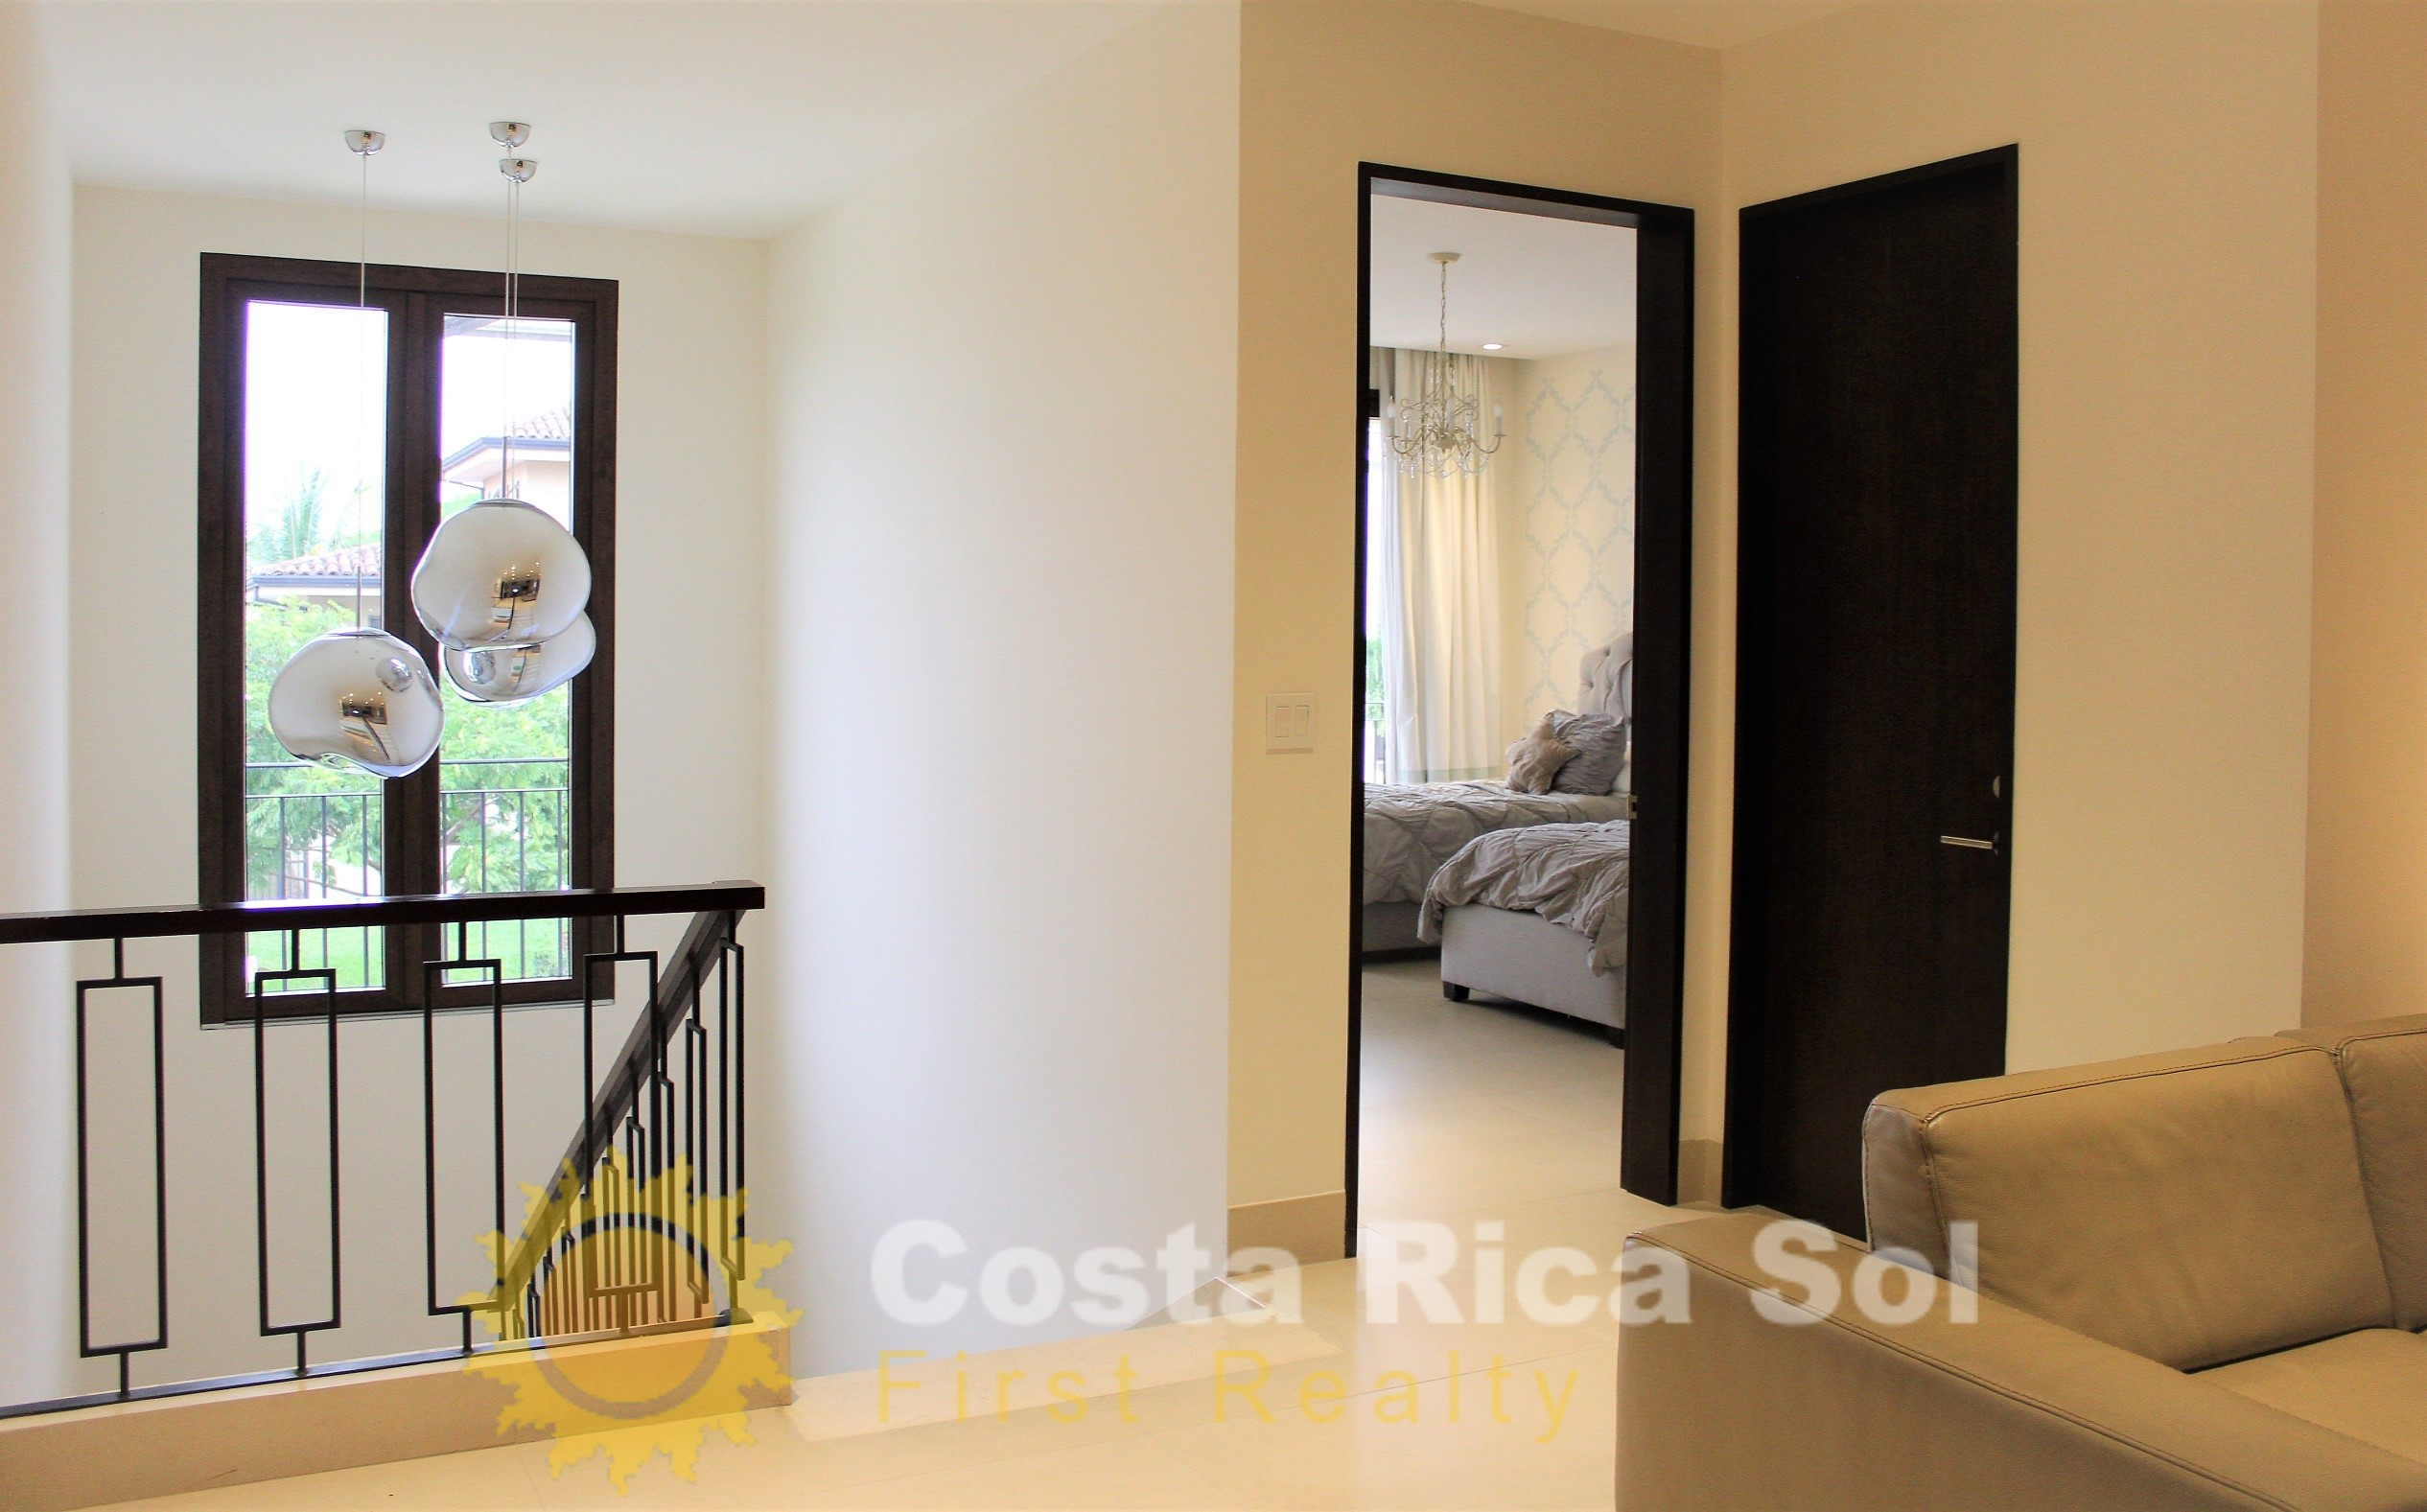 //costaricasol.com/images/jux_real_estate/realties/IMG_09051.jpg